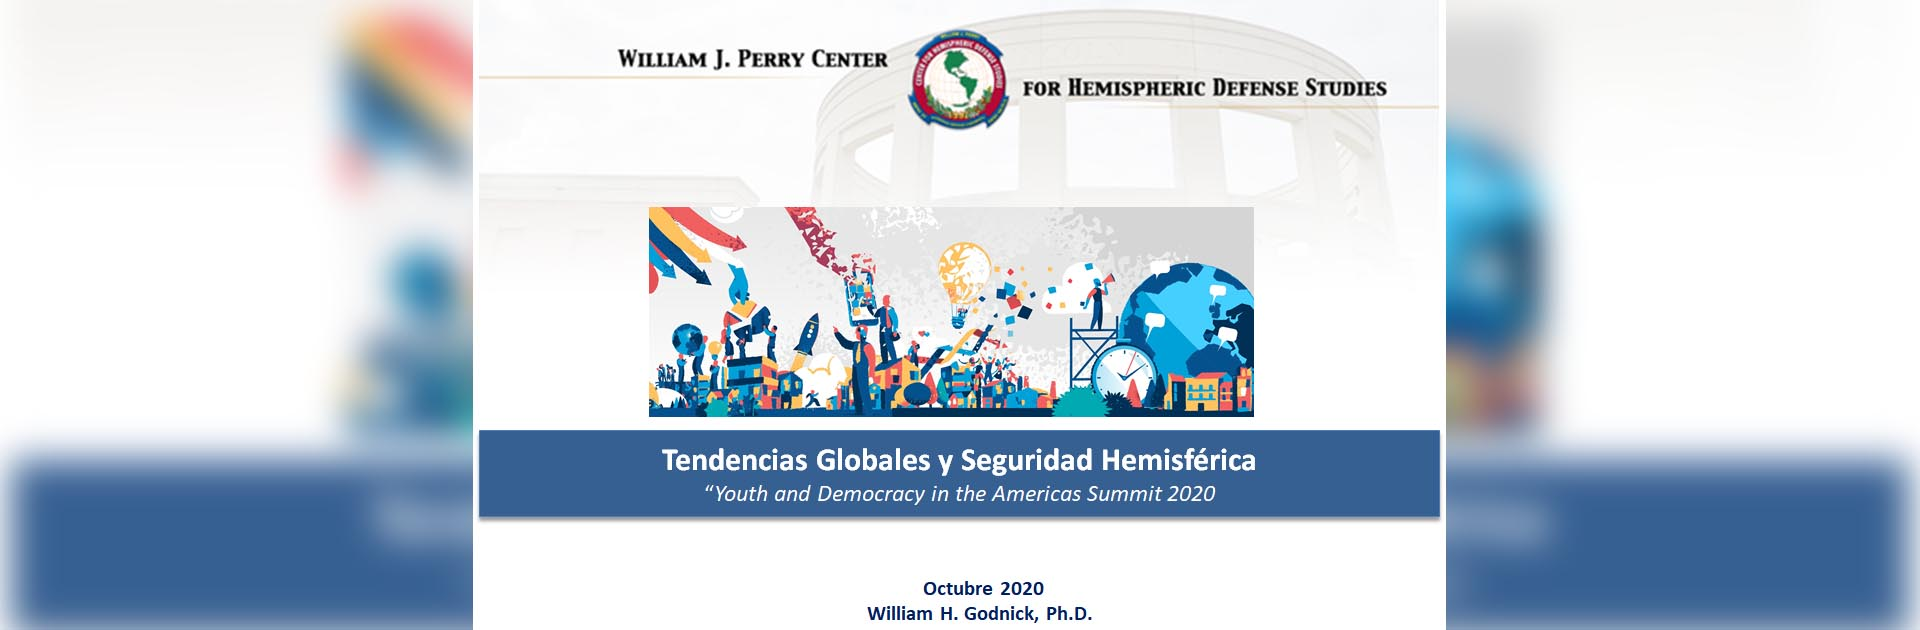 Youth and Democracy in the Americas Summit